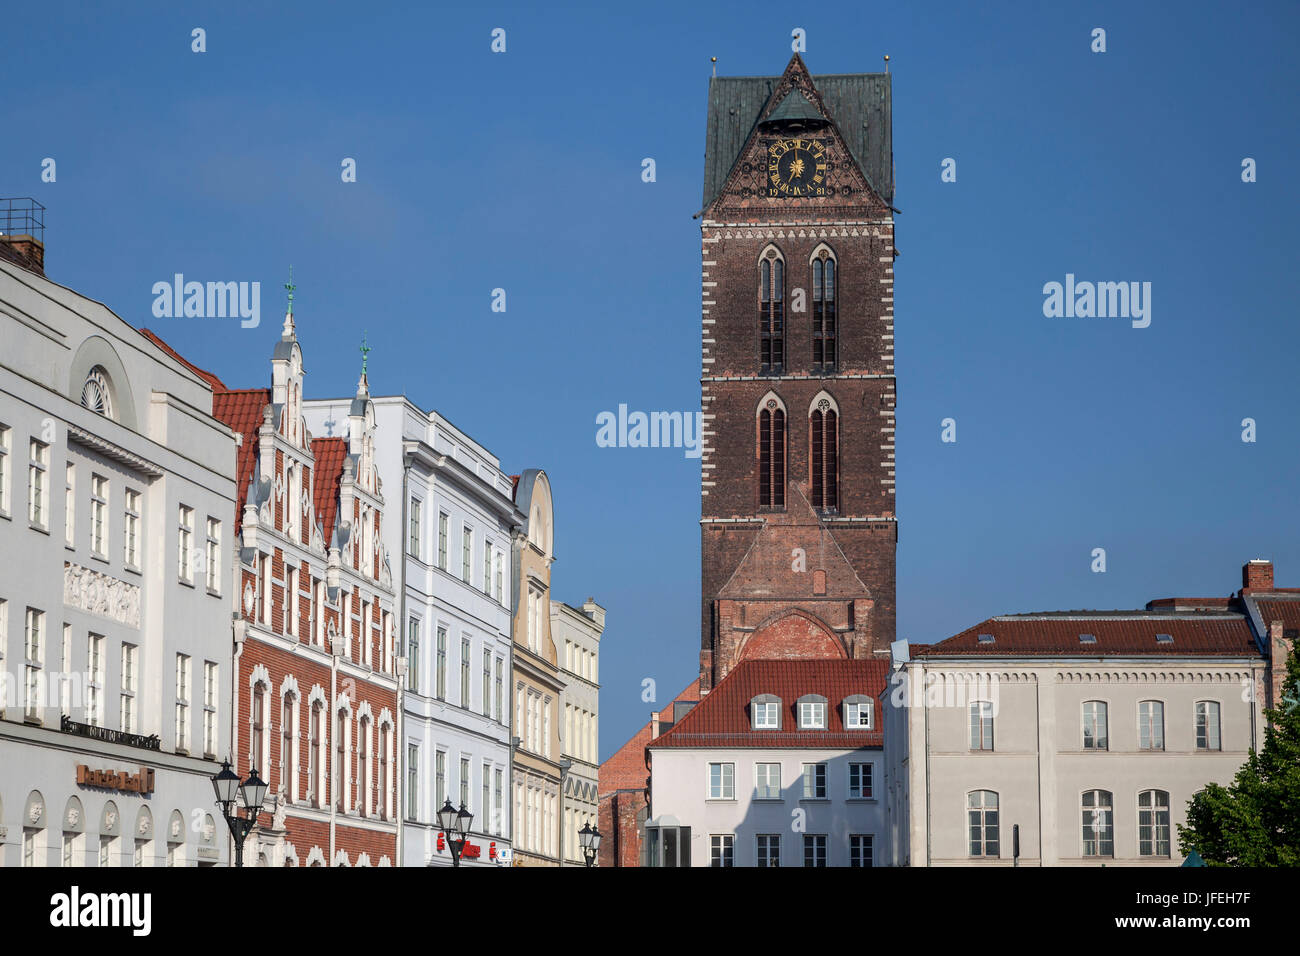 Marien's steeple behind houses on the marketplace, Hanseatic town Wismar, Mecklenburg, Mecklenburg-West Pomerania, - Stock Image